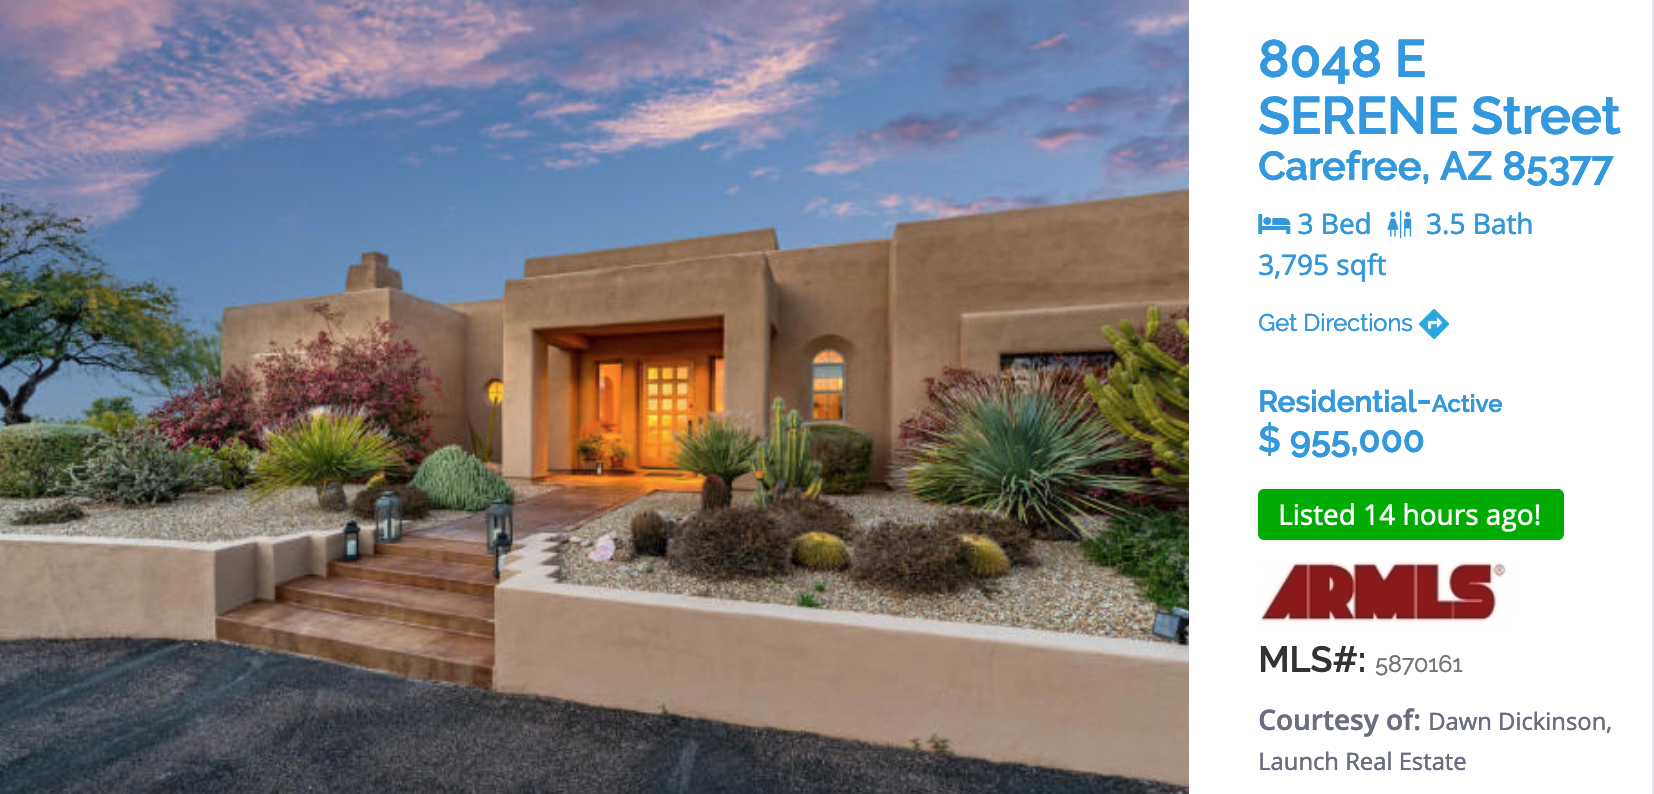 CAREFREE FEATURED HOME